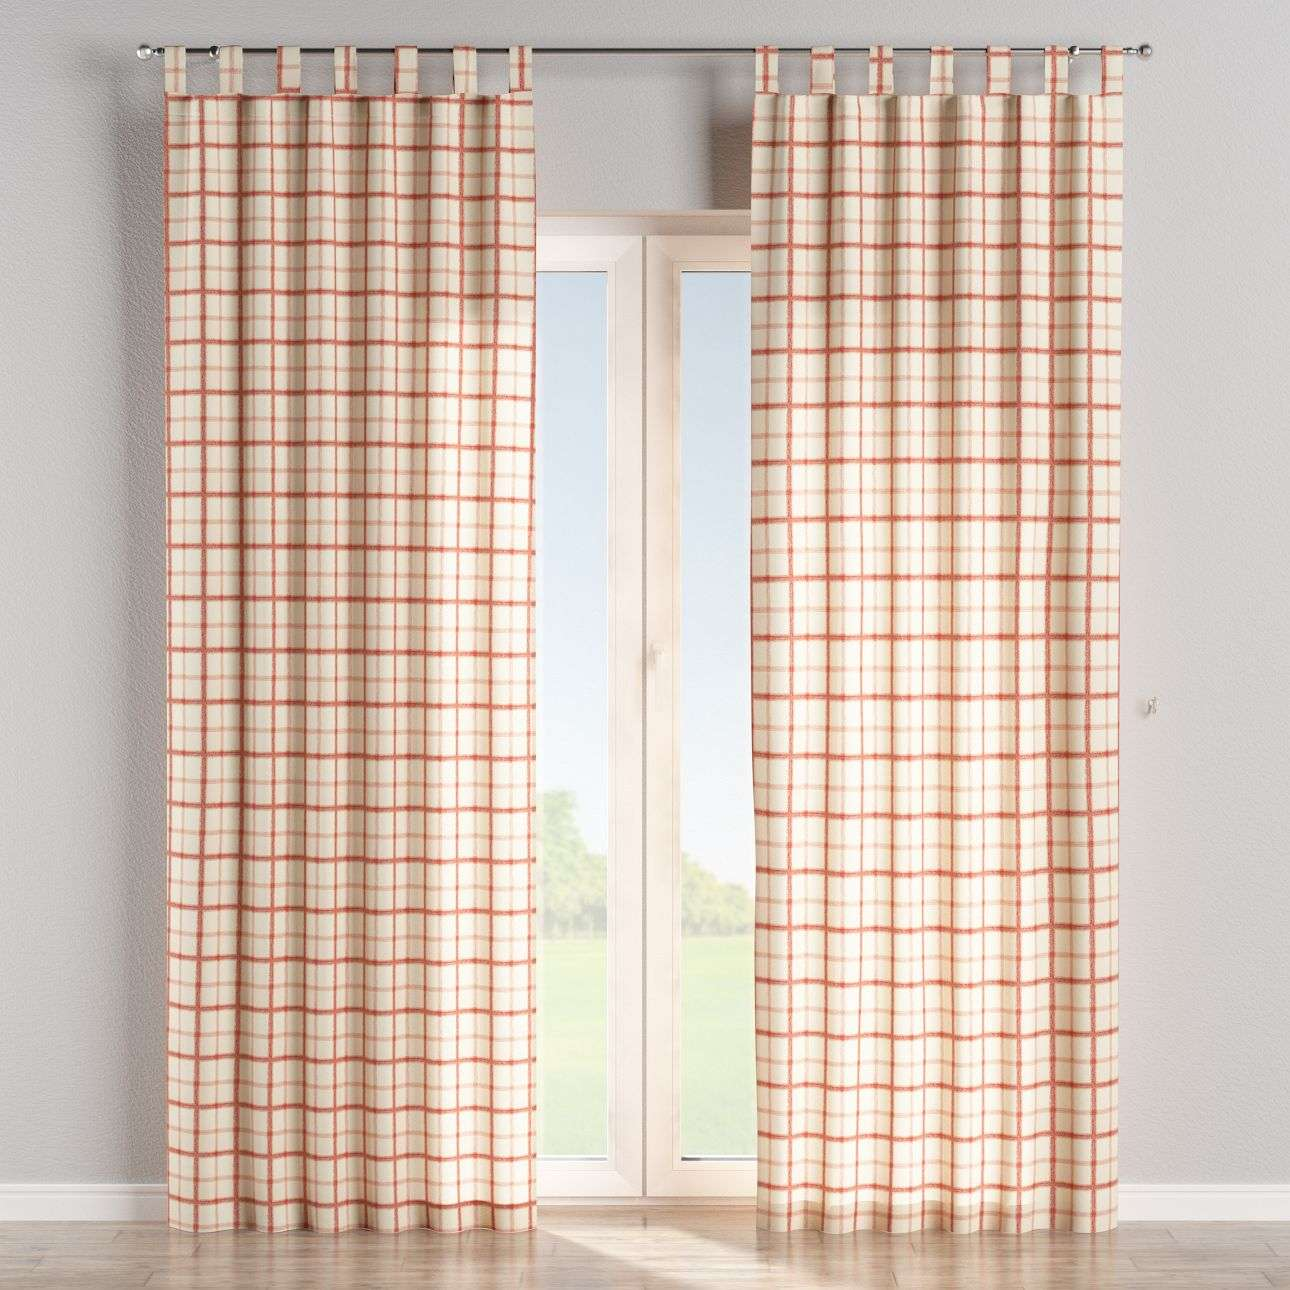 Tab top curtains 130 x 260 cm (51 x 102 inch) in collection Avinon, fabric: 131-15